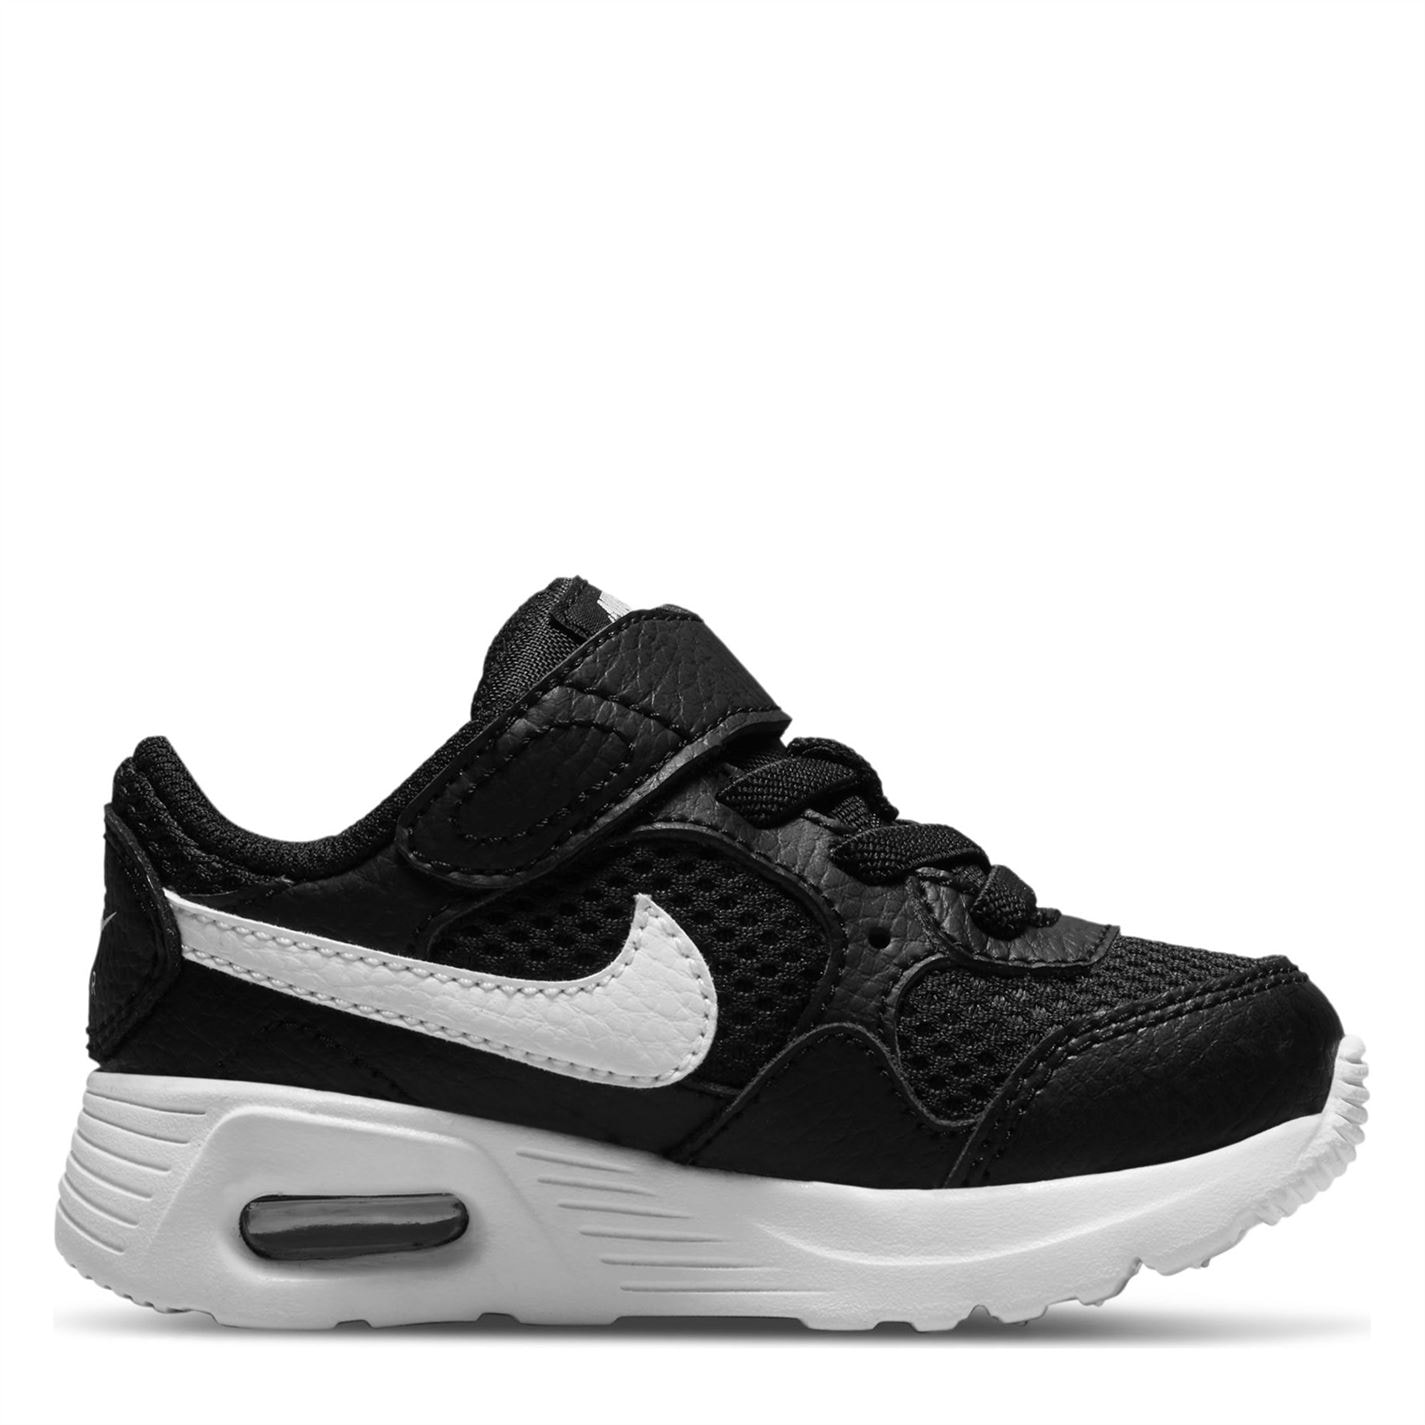 Nike Air Max Baby/Toddler Shoe Black/White